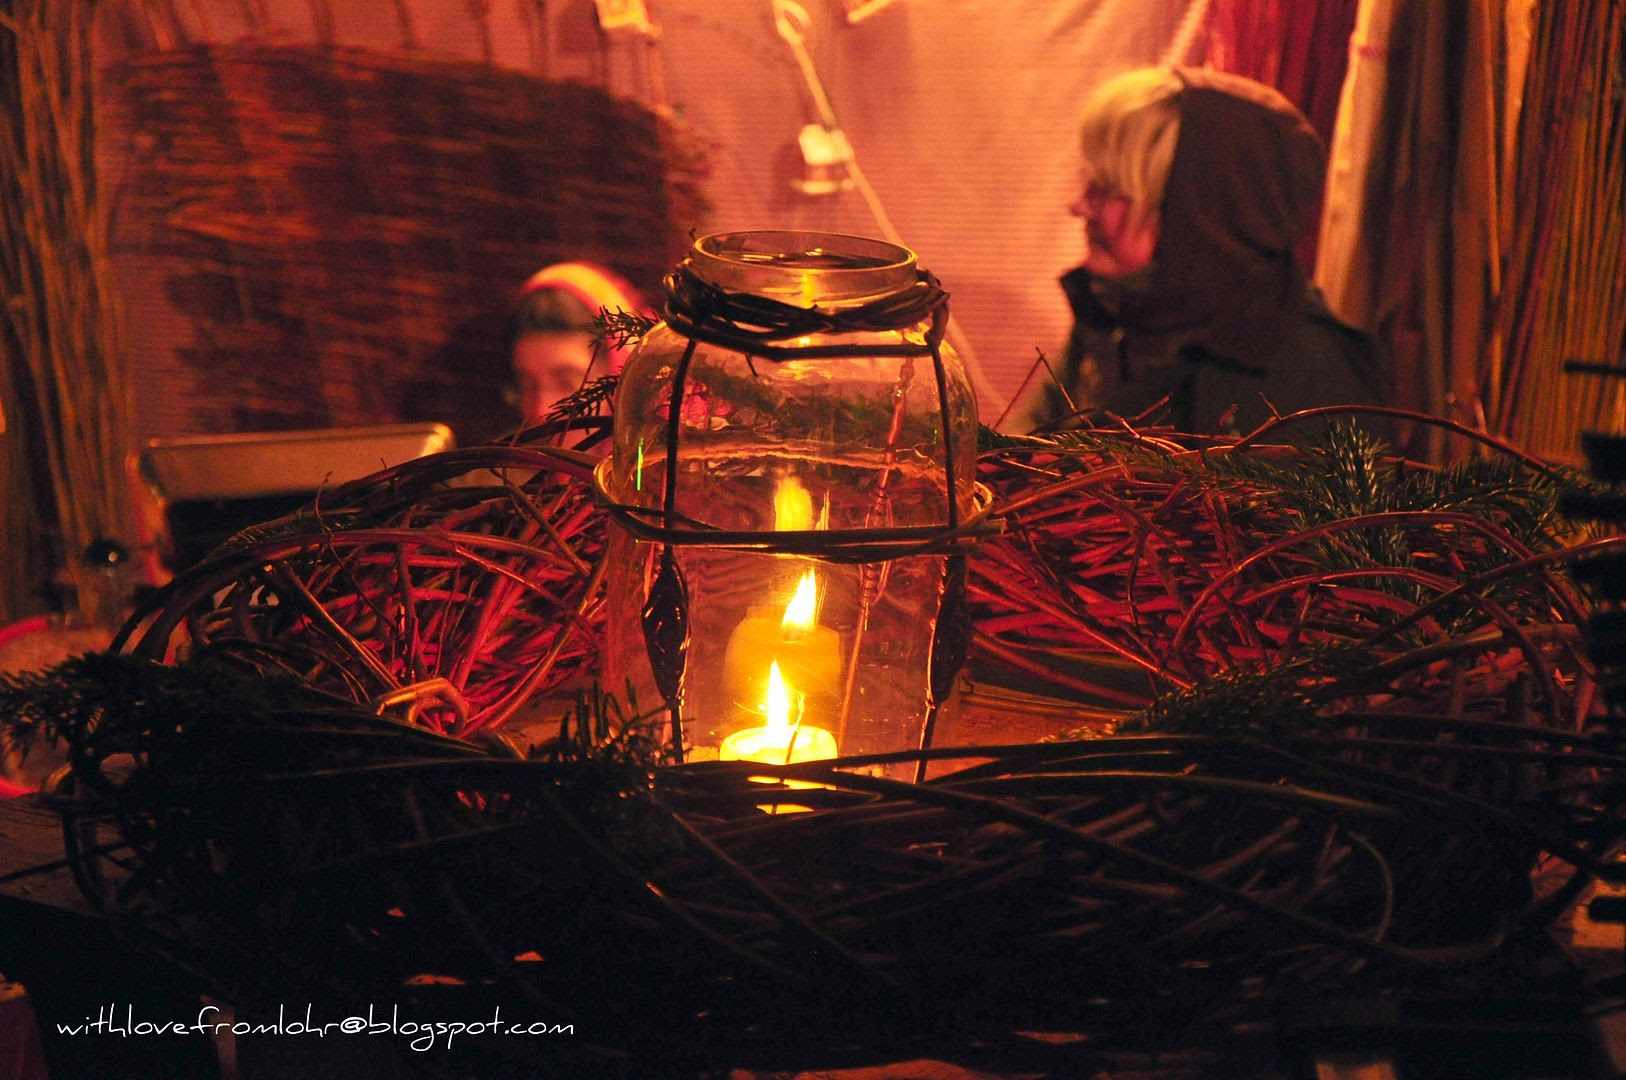 01.12.11, A family preparing Rattan wreaths at the Christmas market.